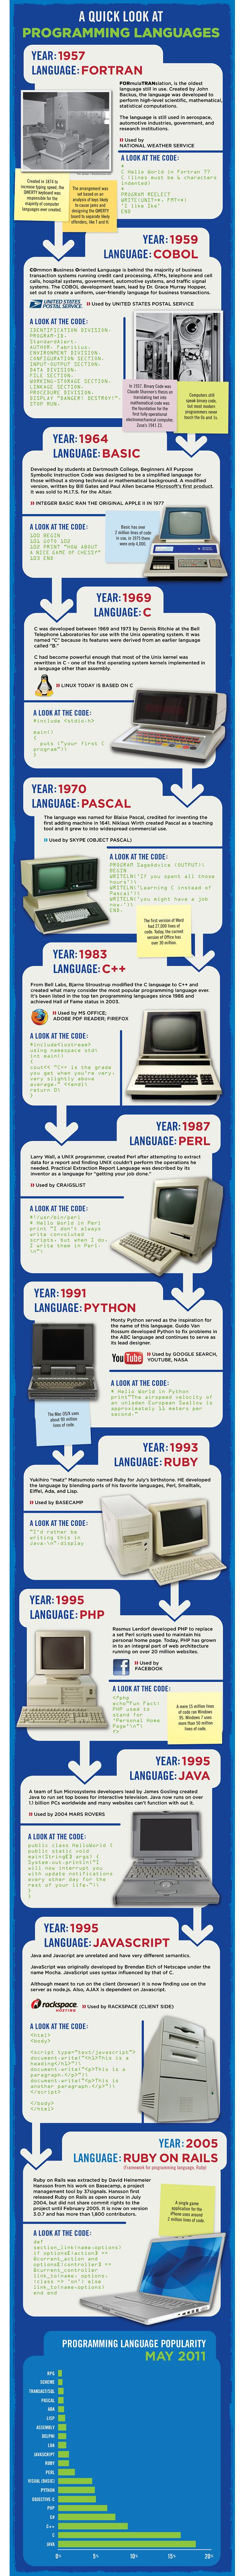 167 Best Hardware Software Gadgets Images On Pinterest Photo Tour How A Printed Circuit Board Is Made Extremetech Infograph The History Of Programming Languages